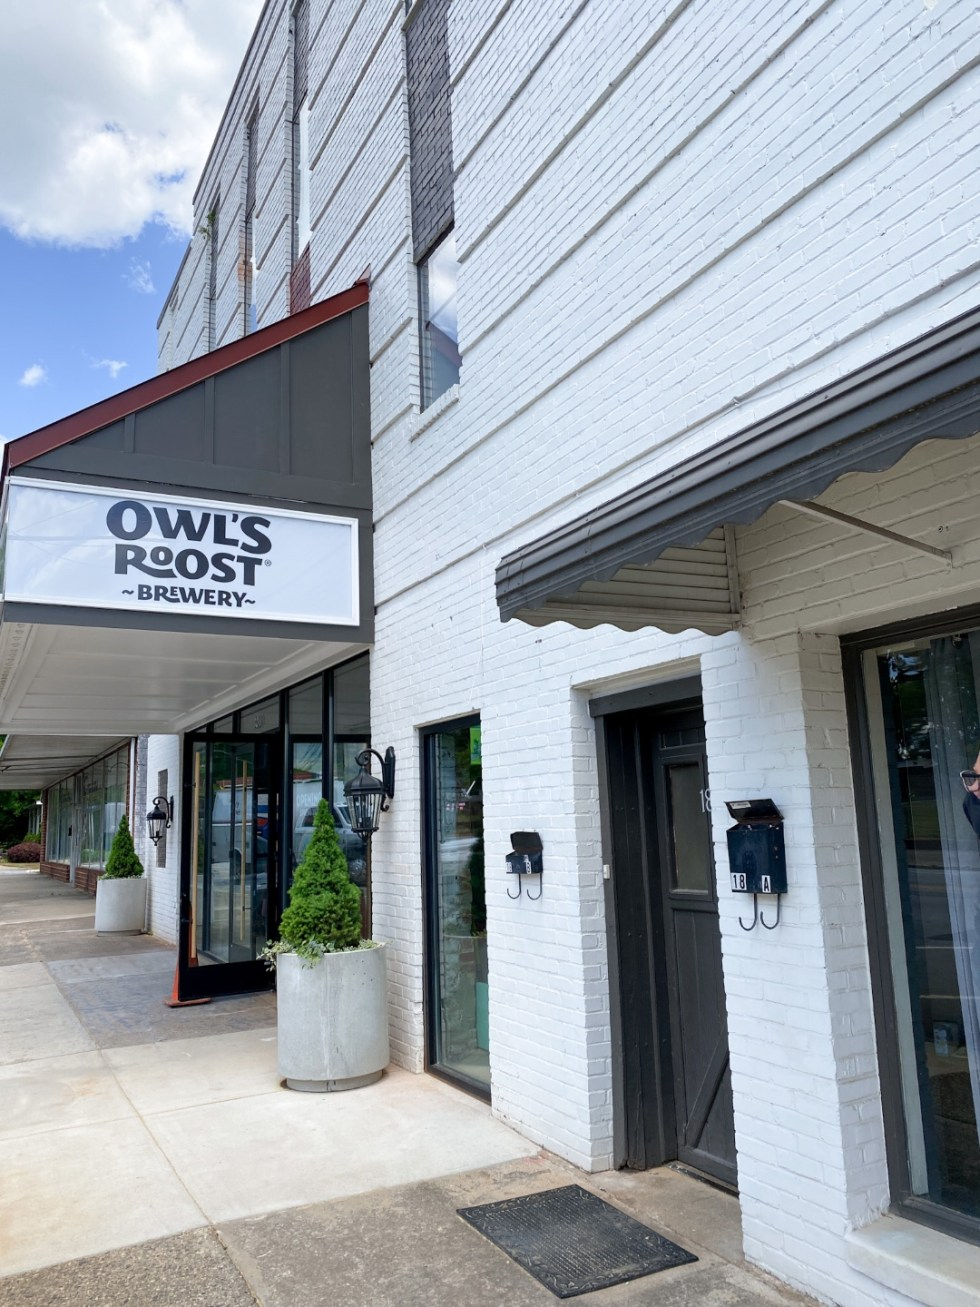 An Afternoon Trip to Franklin County, NC - I'm Fixin' To - @imfixintoblog | Franklin County NC by popular North Carolina travel blog, I'm Fixin' To: image of Owl's Roost brewery.